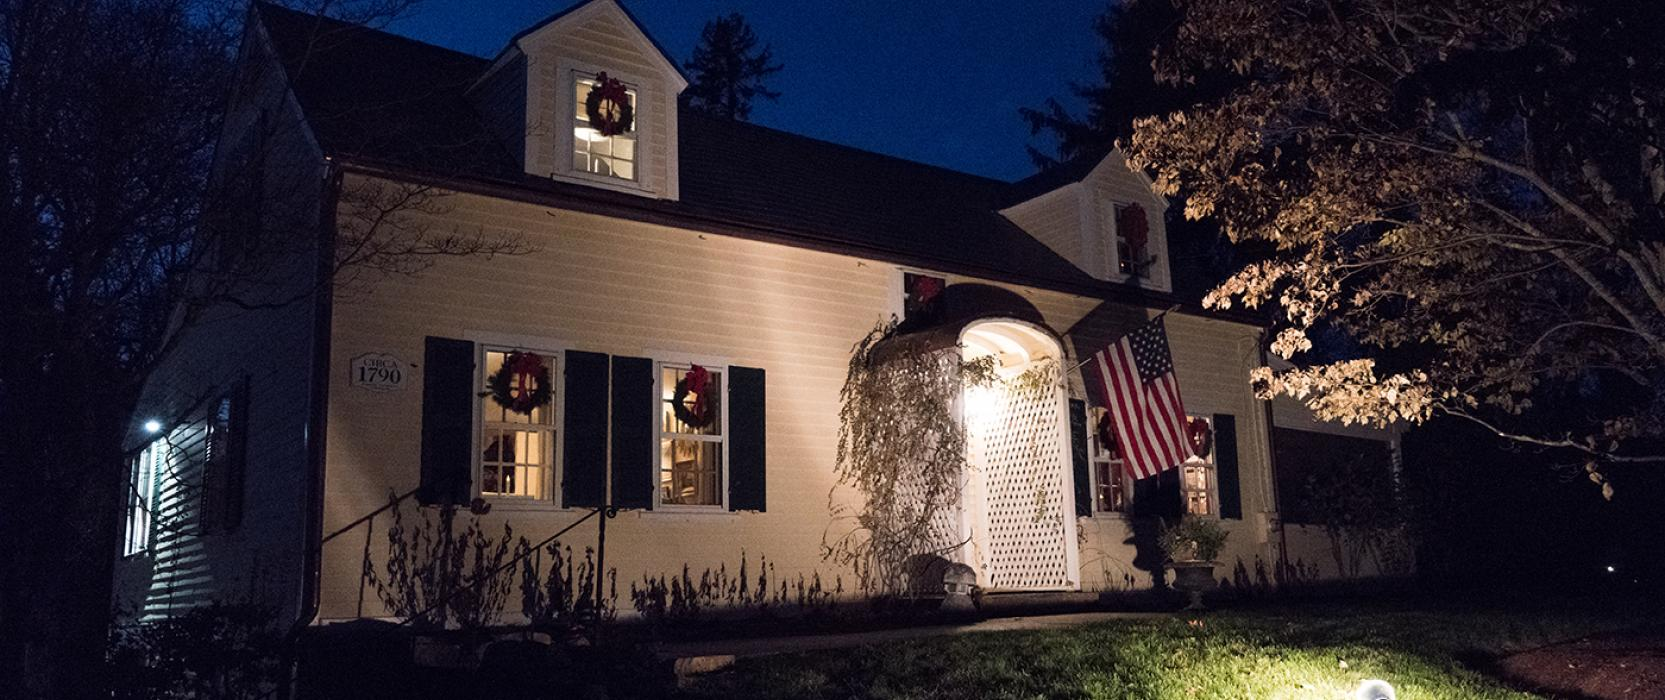 Exterior holiday decorations